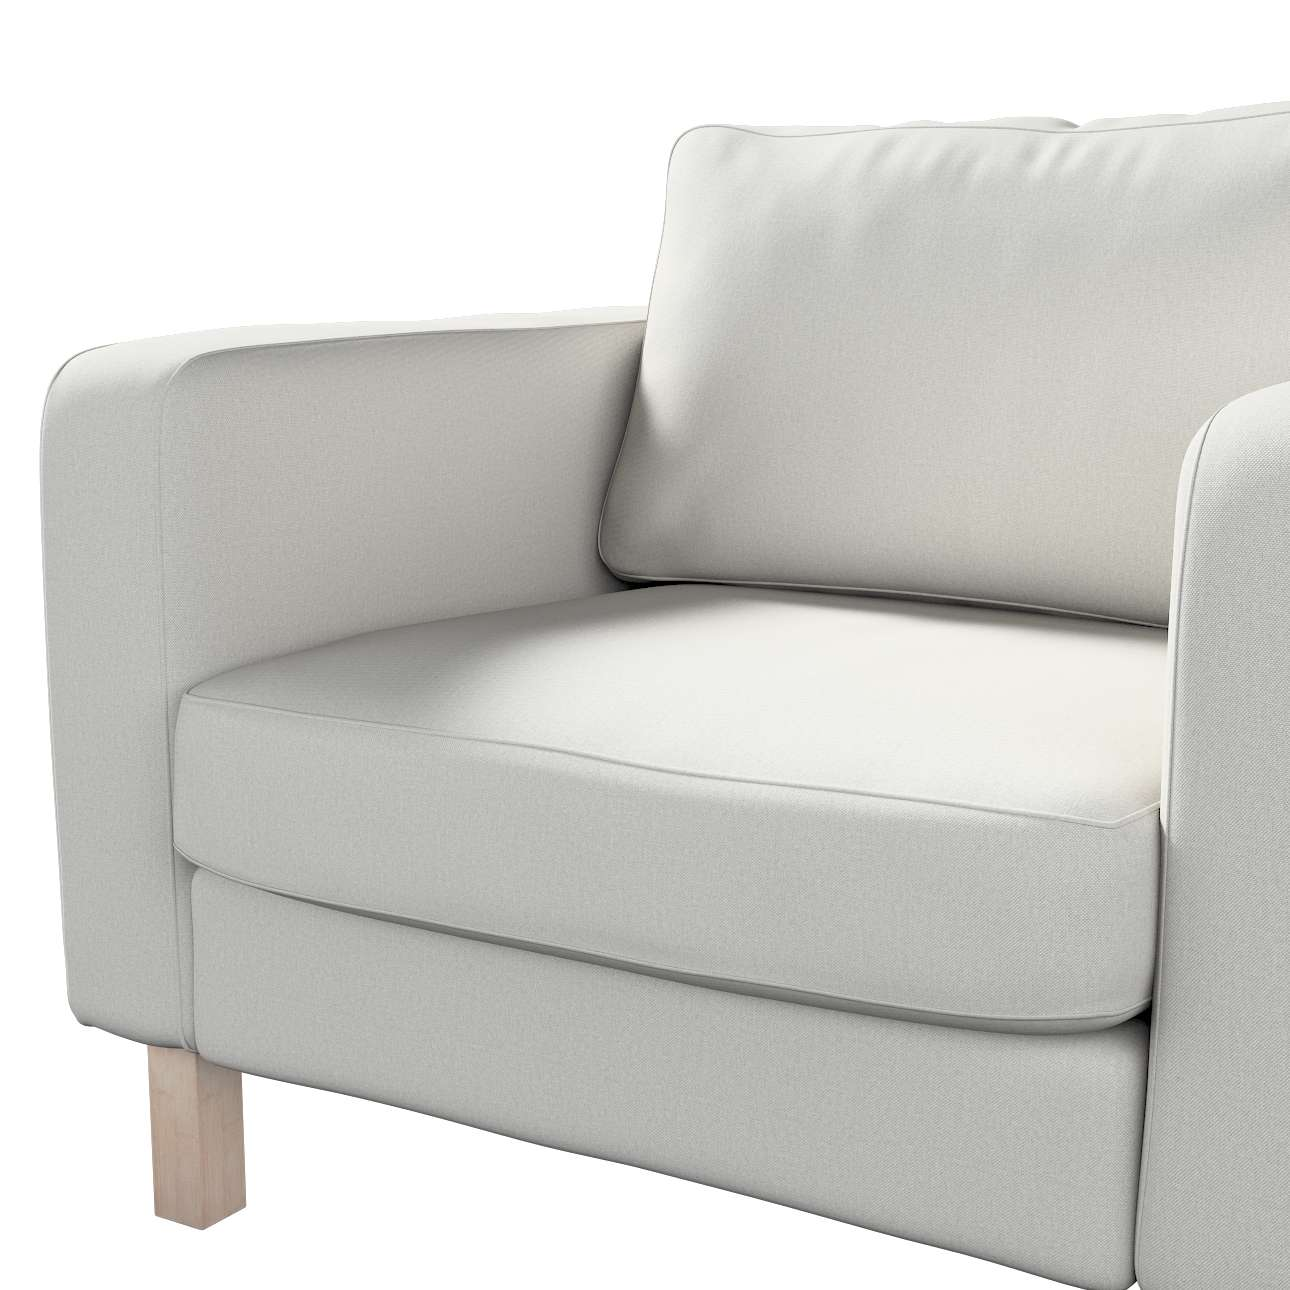 Karlstad armchair cover in collection Etna, fabric: 705-90